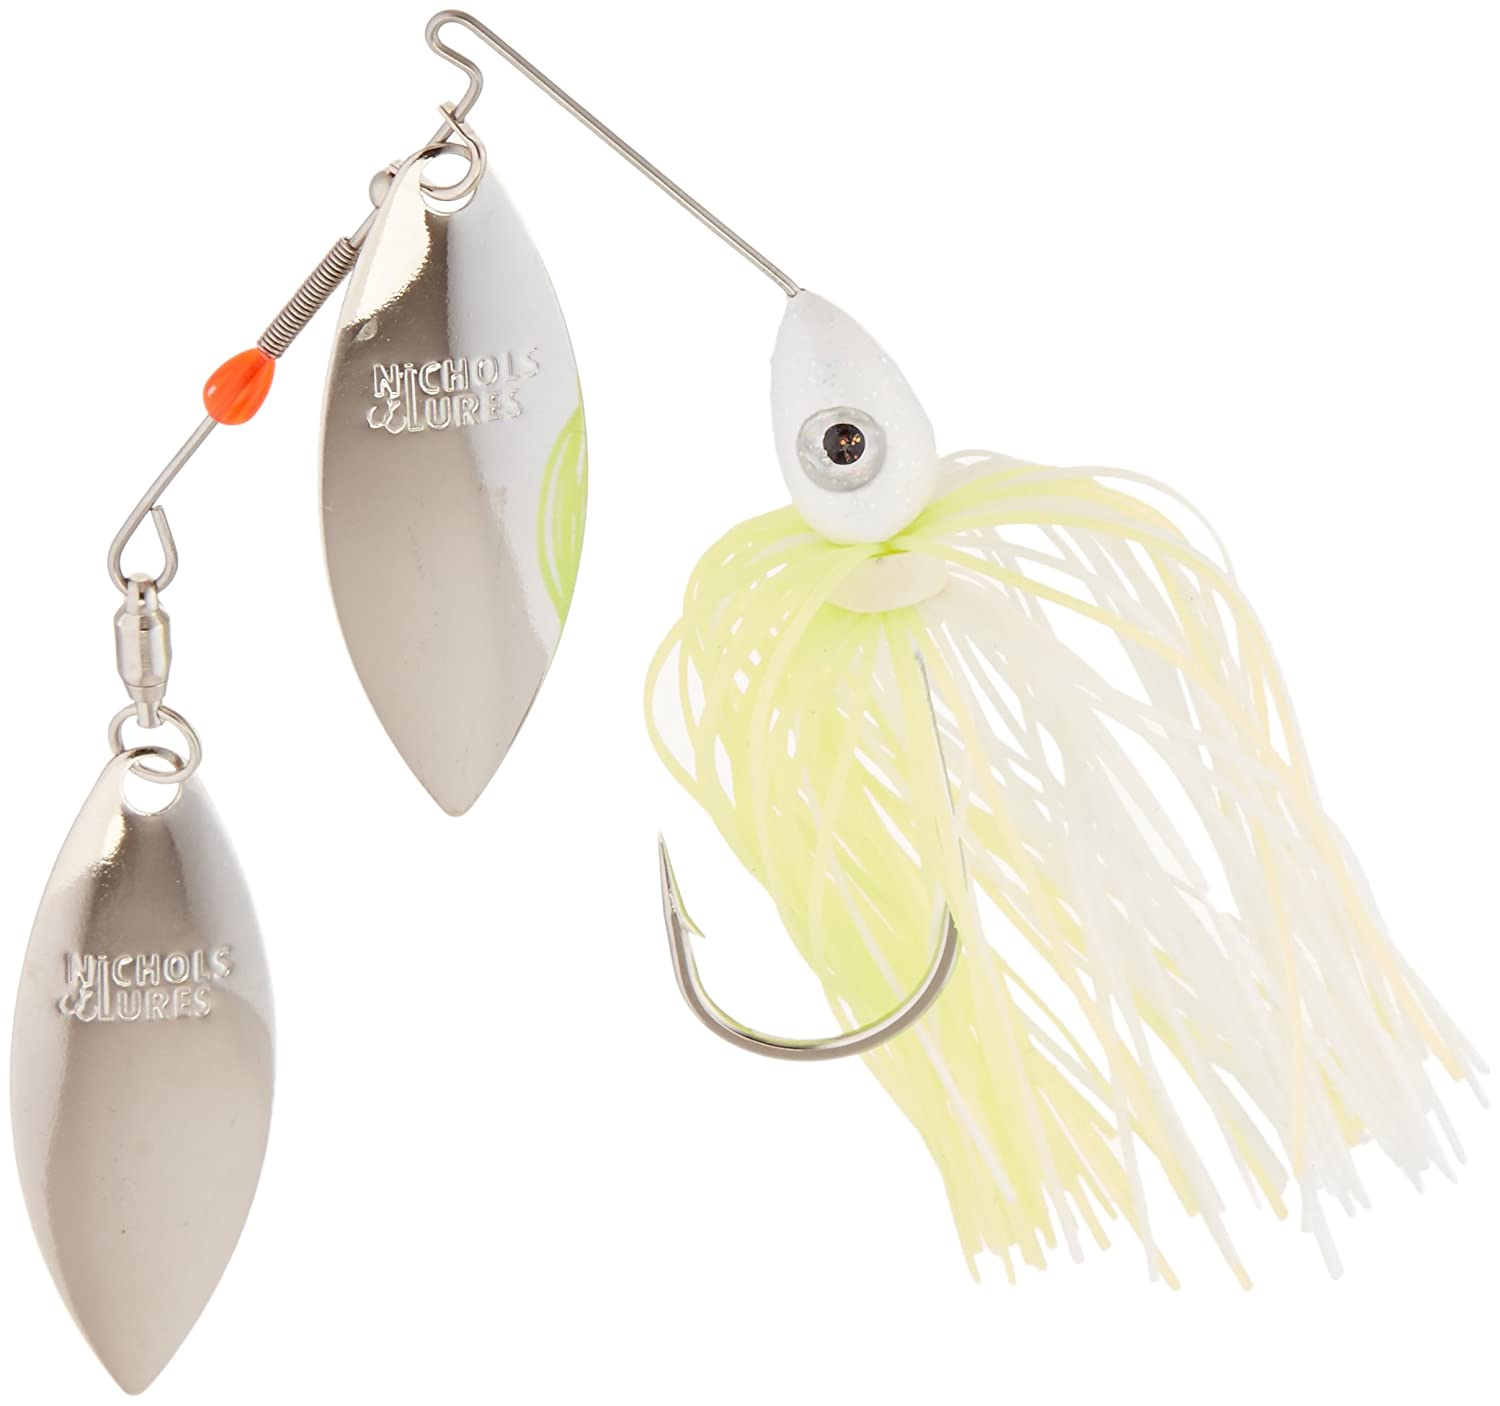 Nichols Lures Pulsator 800シリーズSpinnerbait B06Y2C6H6B 3/8oz|White and Chartreuse White and Chartreuse 3/8oz